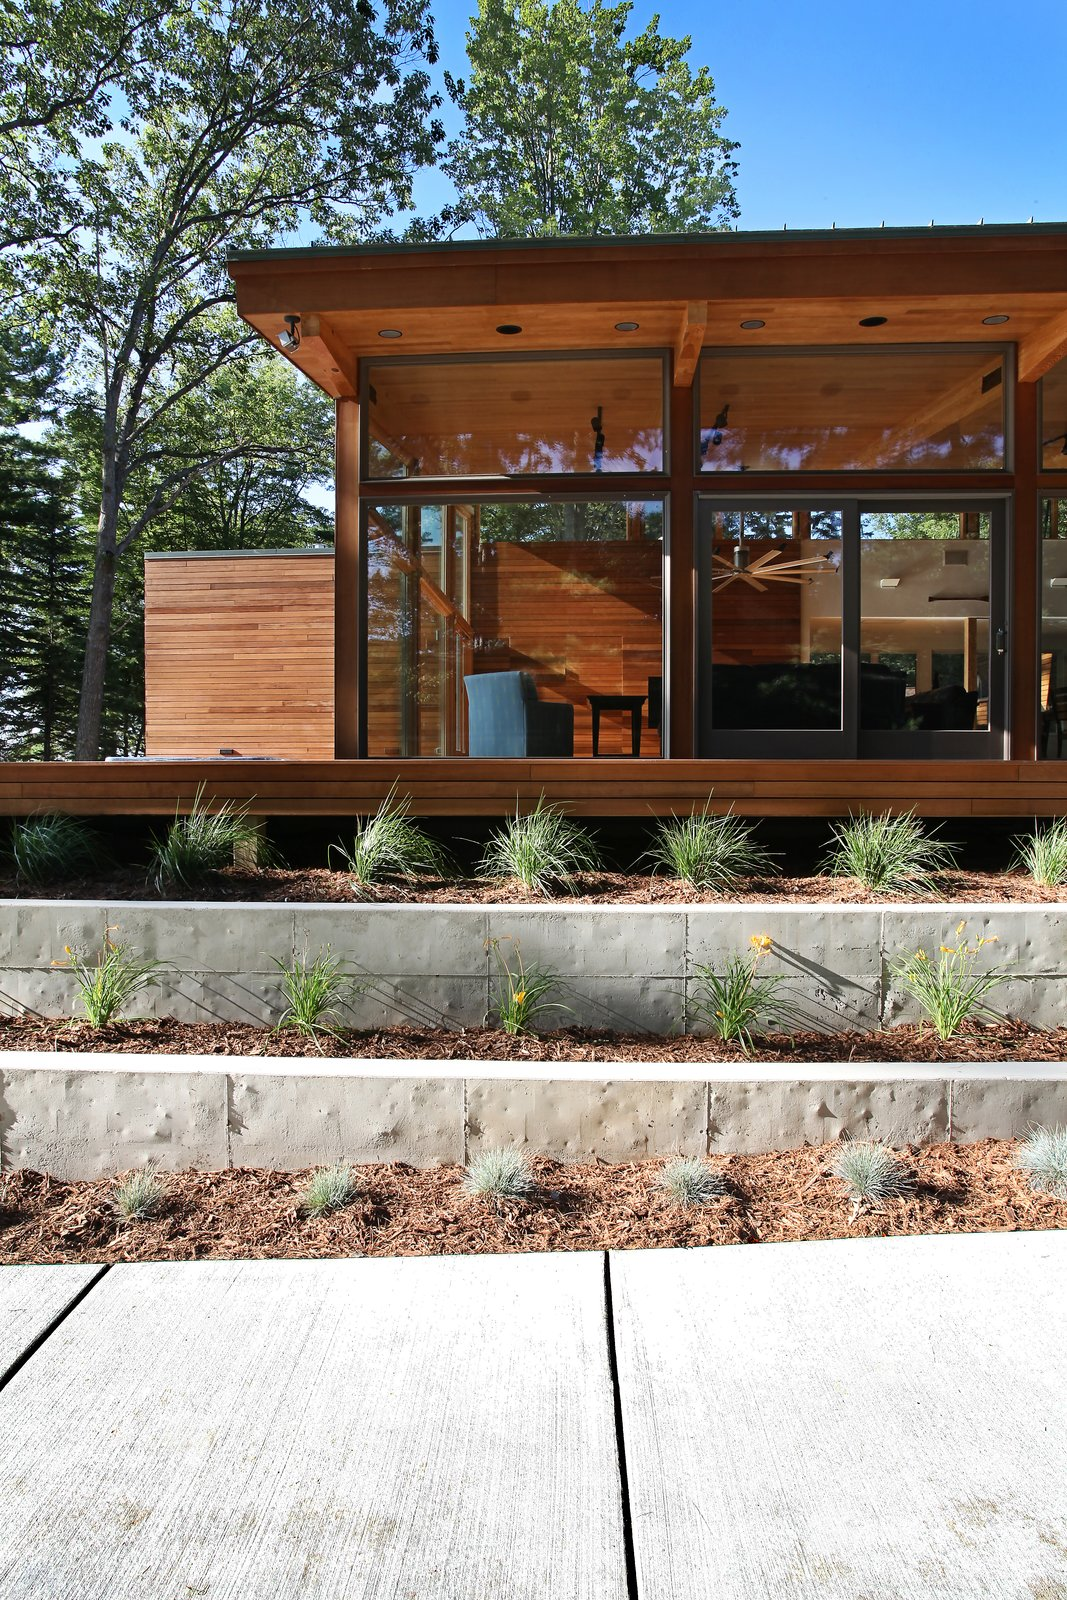 South side with concrete stepped retaining walls  Higgins Lake House by Jeff Jordan Architects